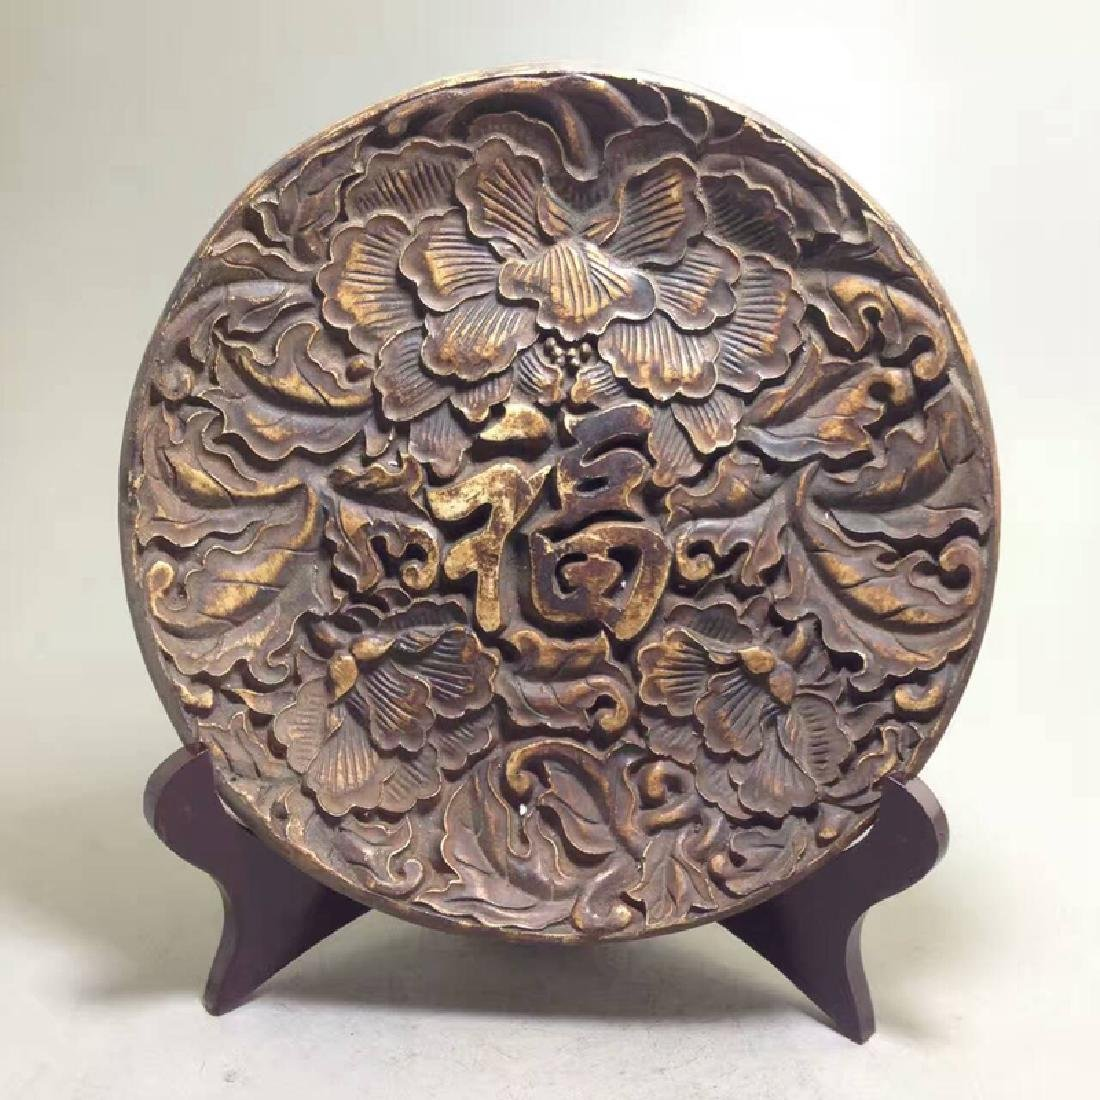 Chinese Antique Snowflake Onyx Plate With Moutan Peony